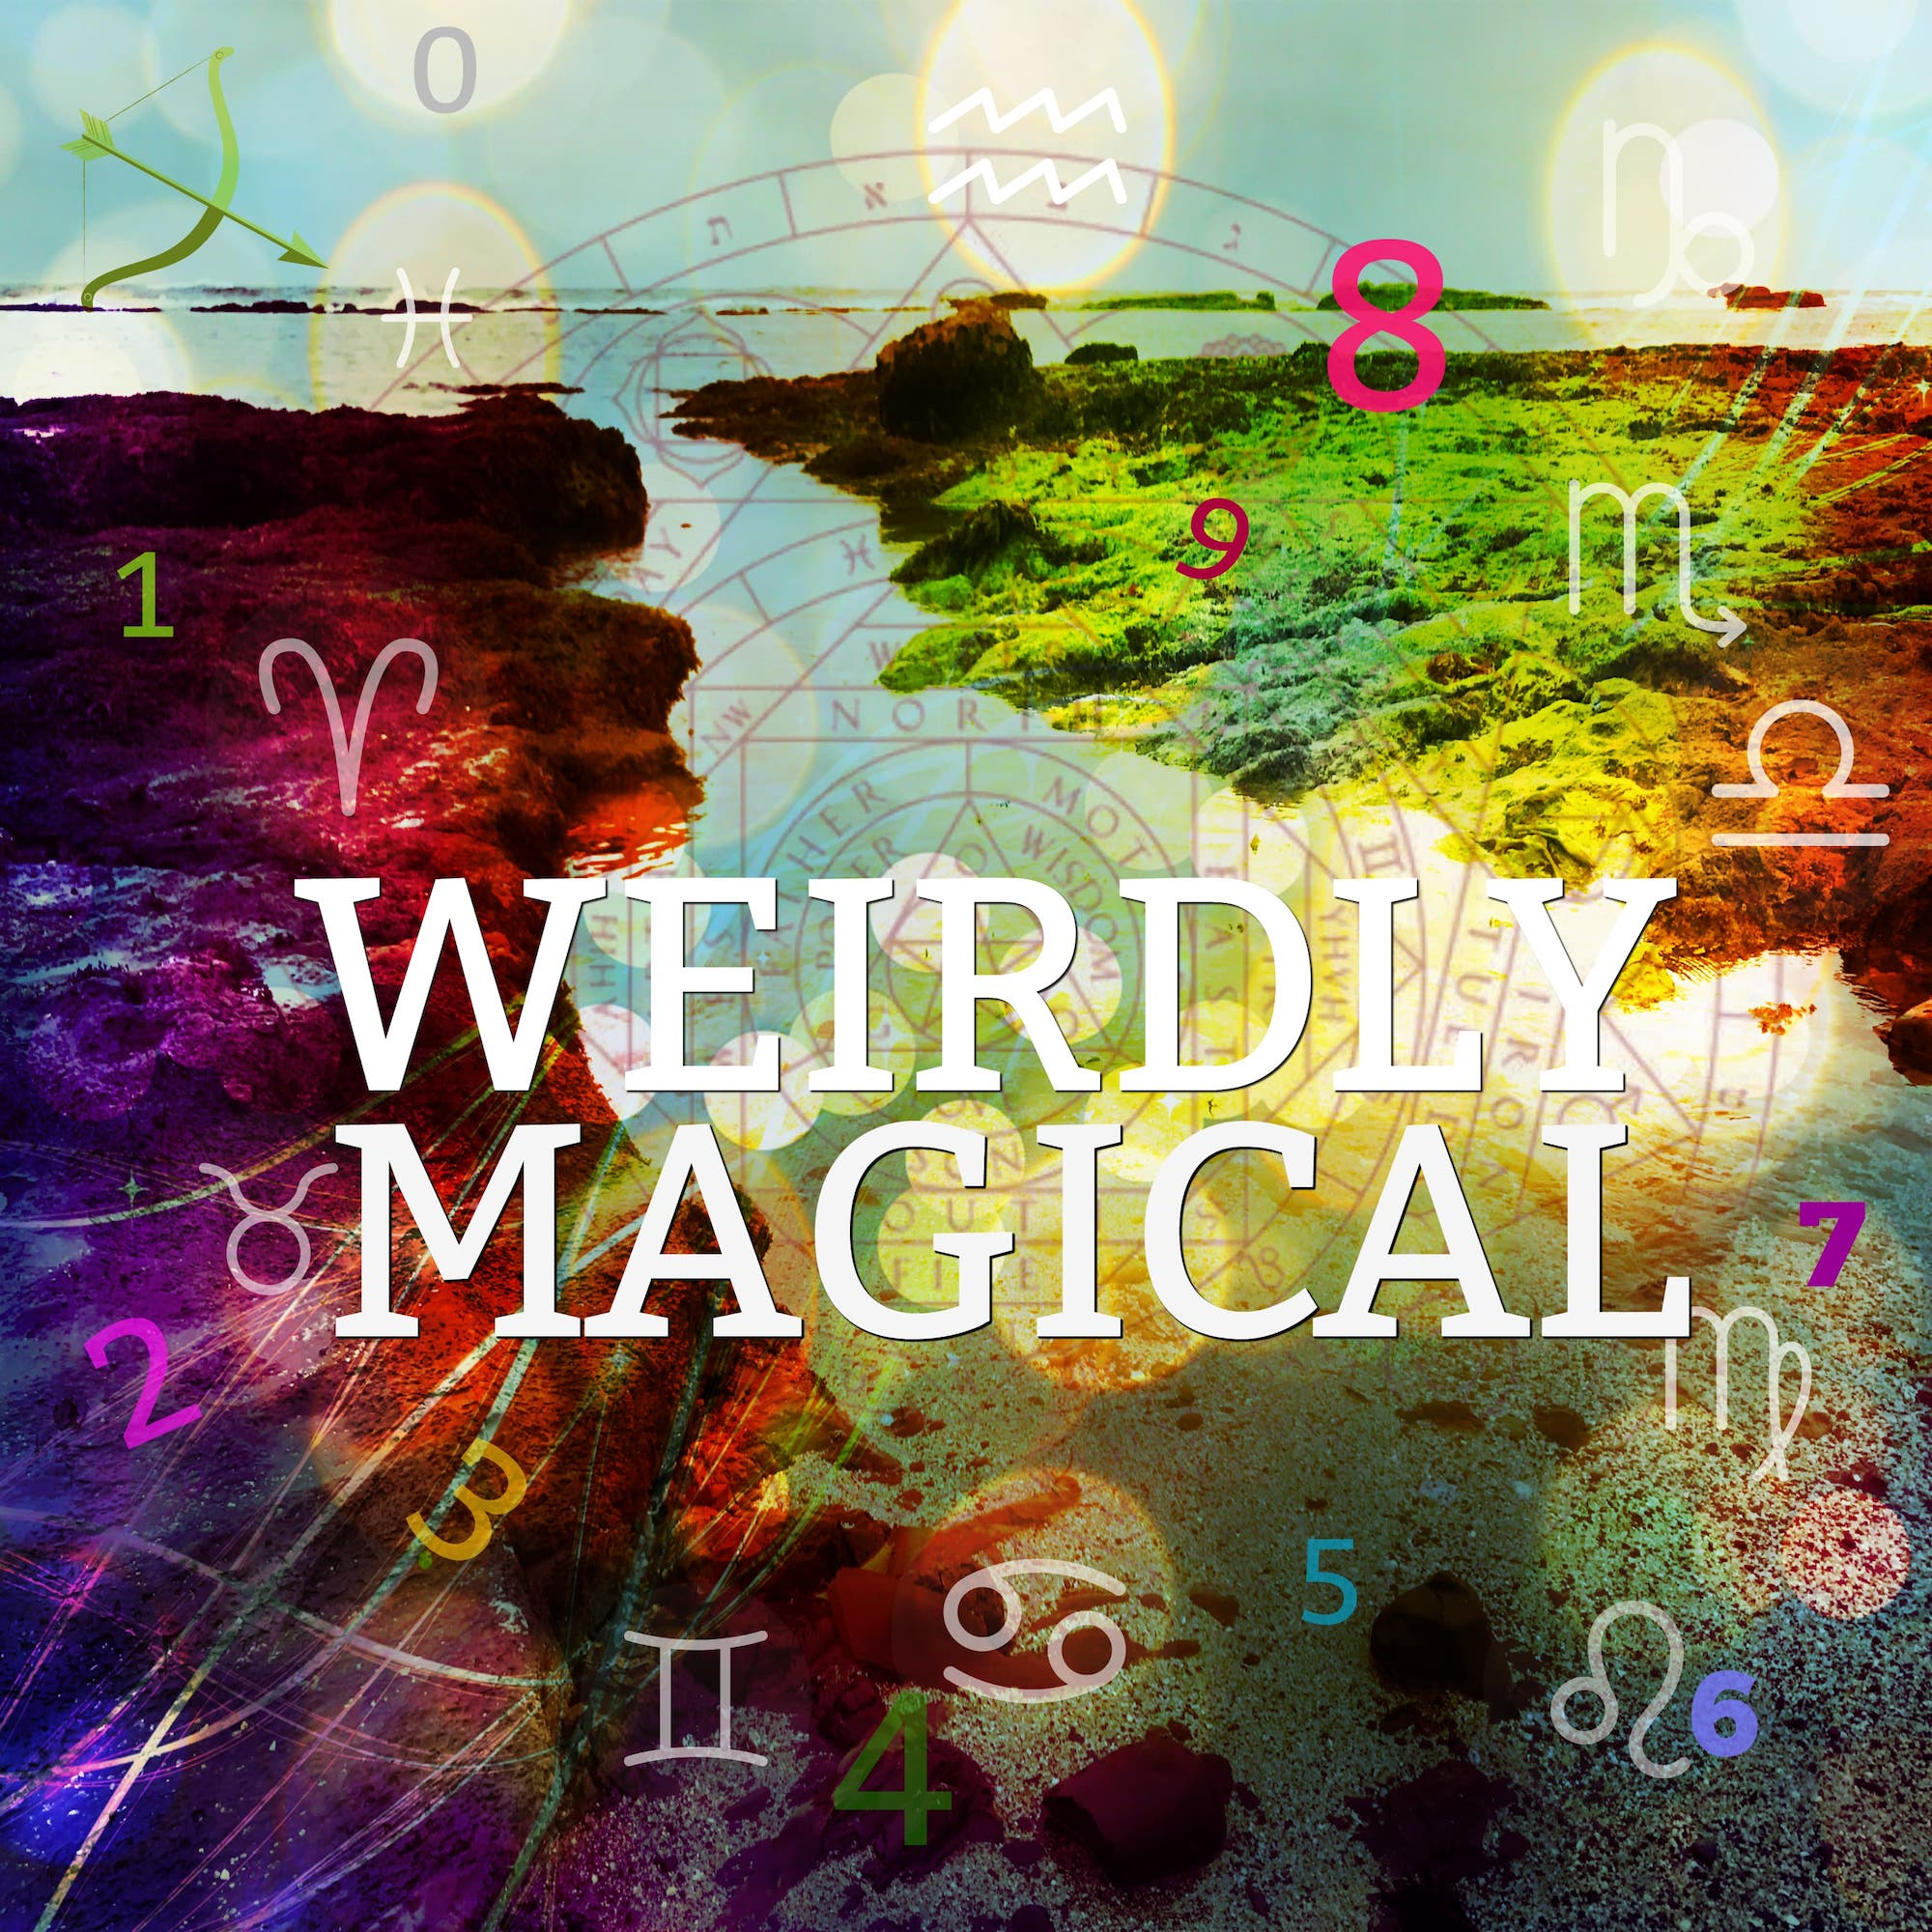 Weirdly Magical with Jen and Lou - Astrology - Numerology - Weird